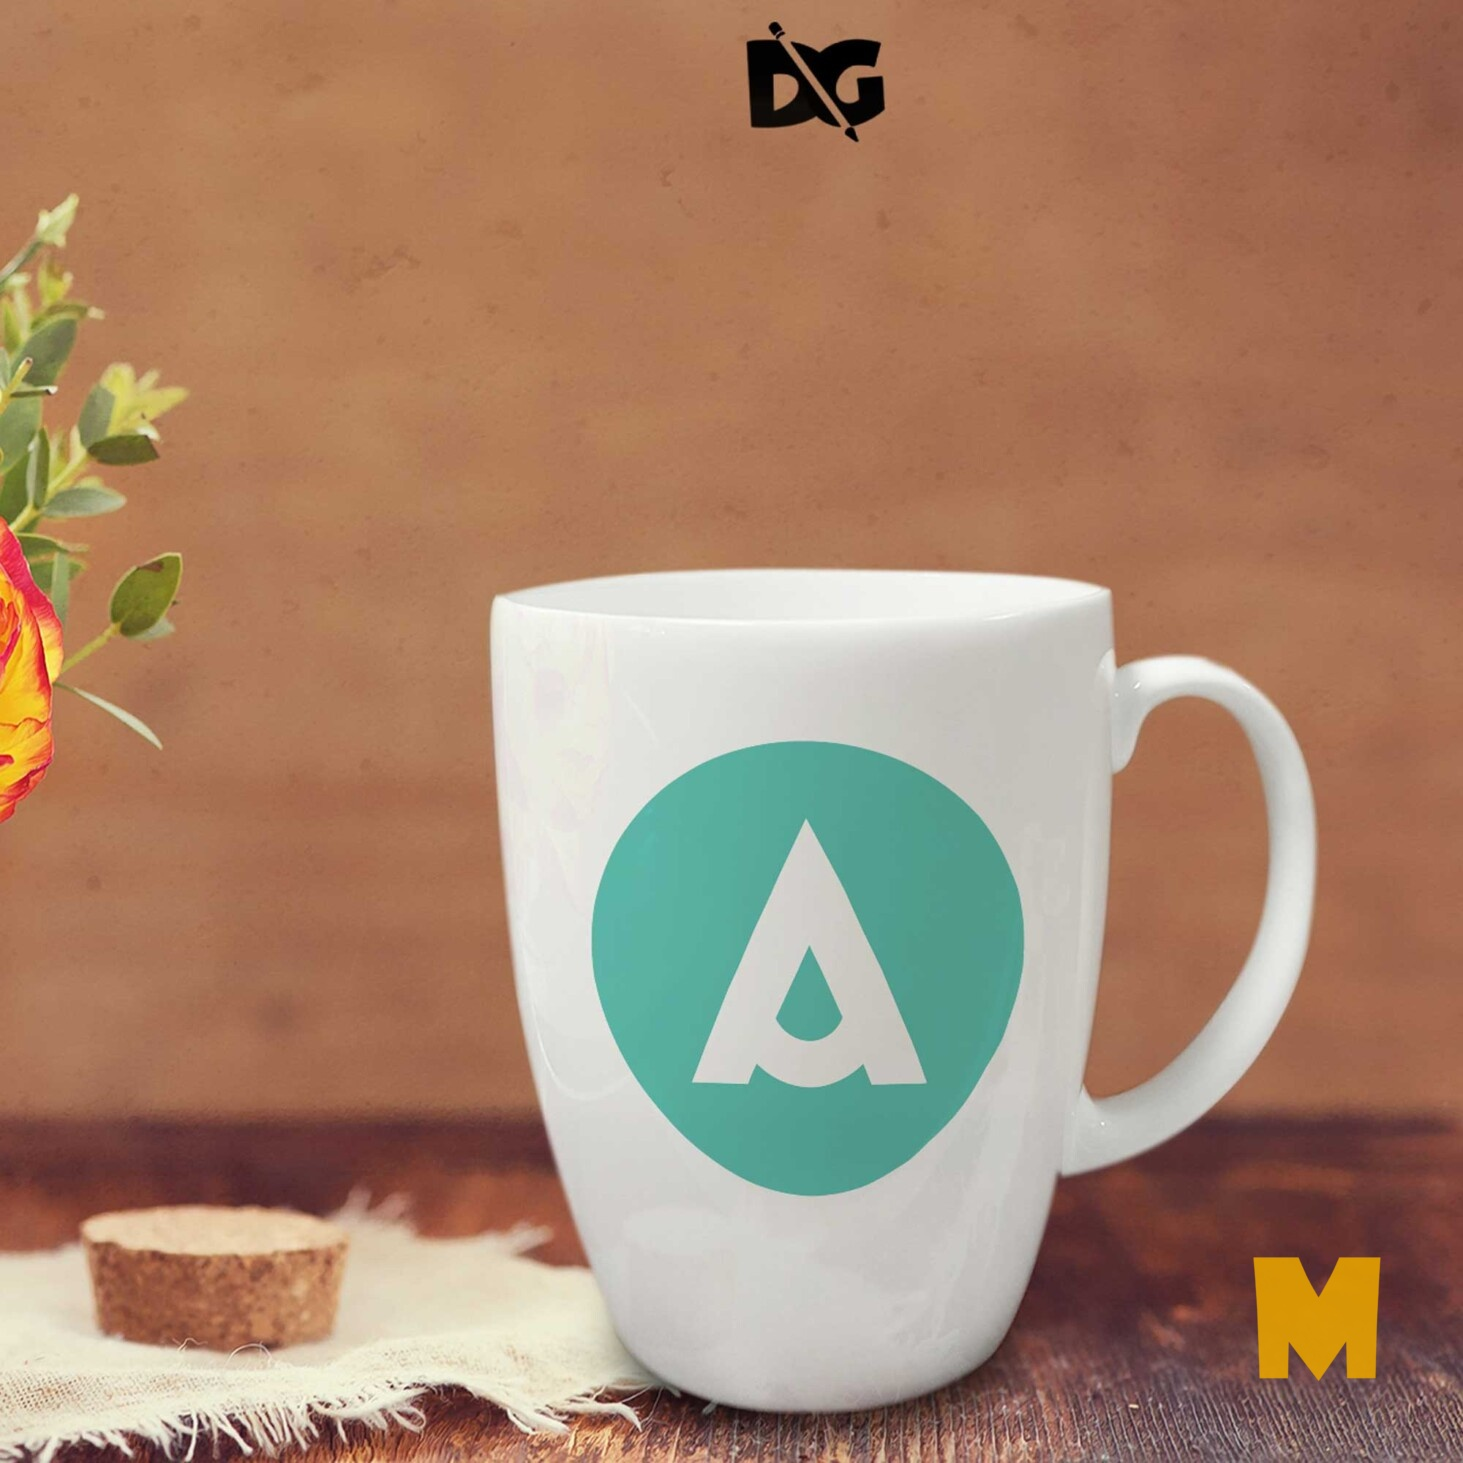 Latest Cup Mockup.